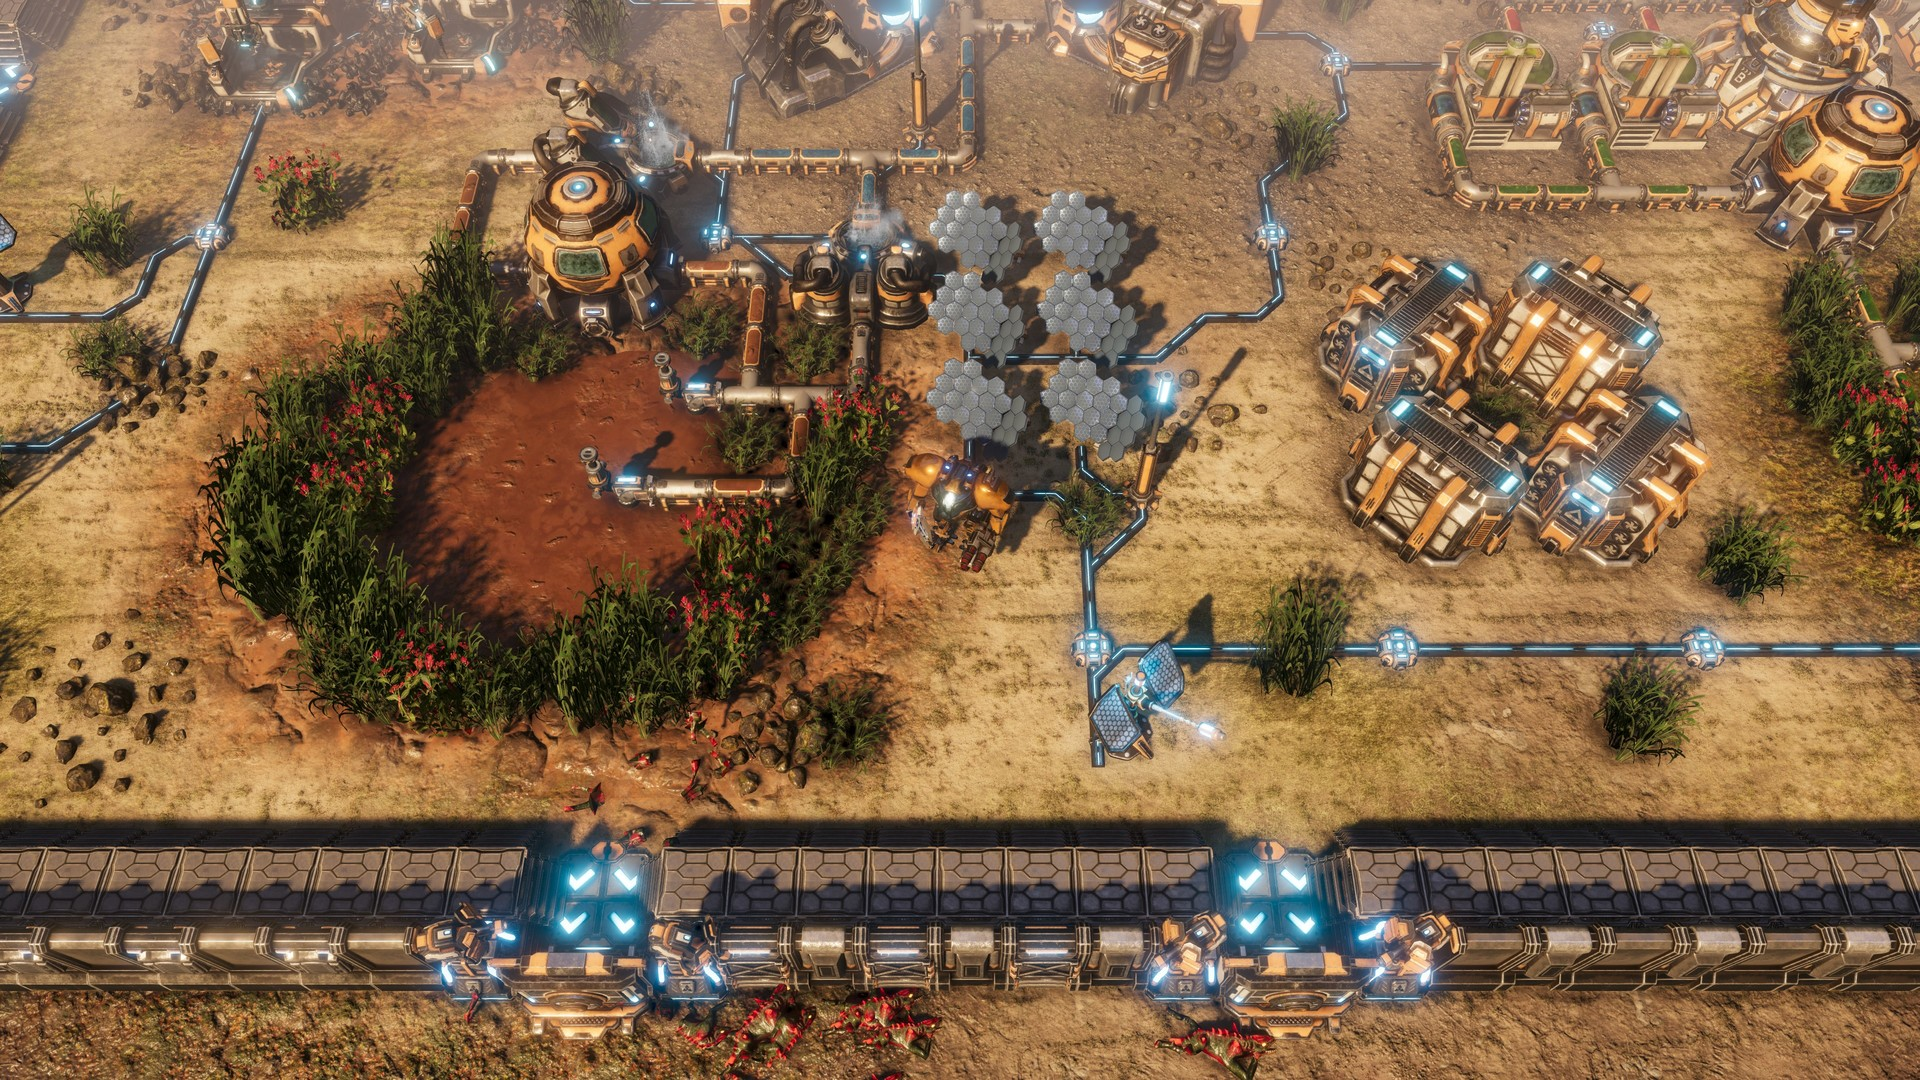 The Riftbreaker Preview - Tower Defense With A Twist